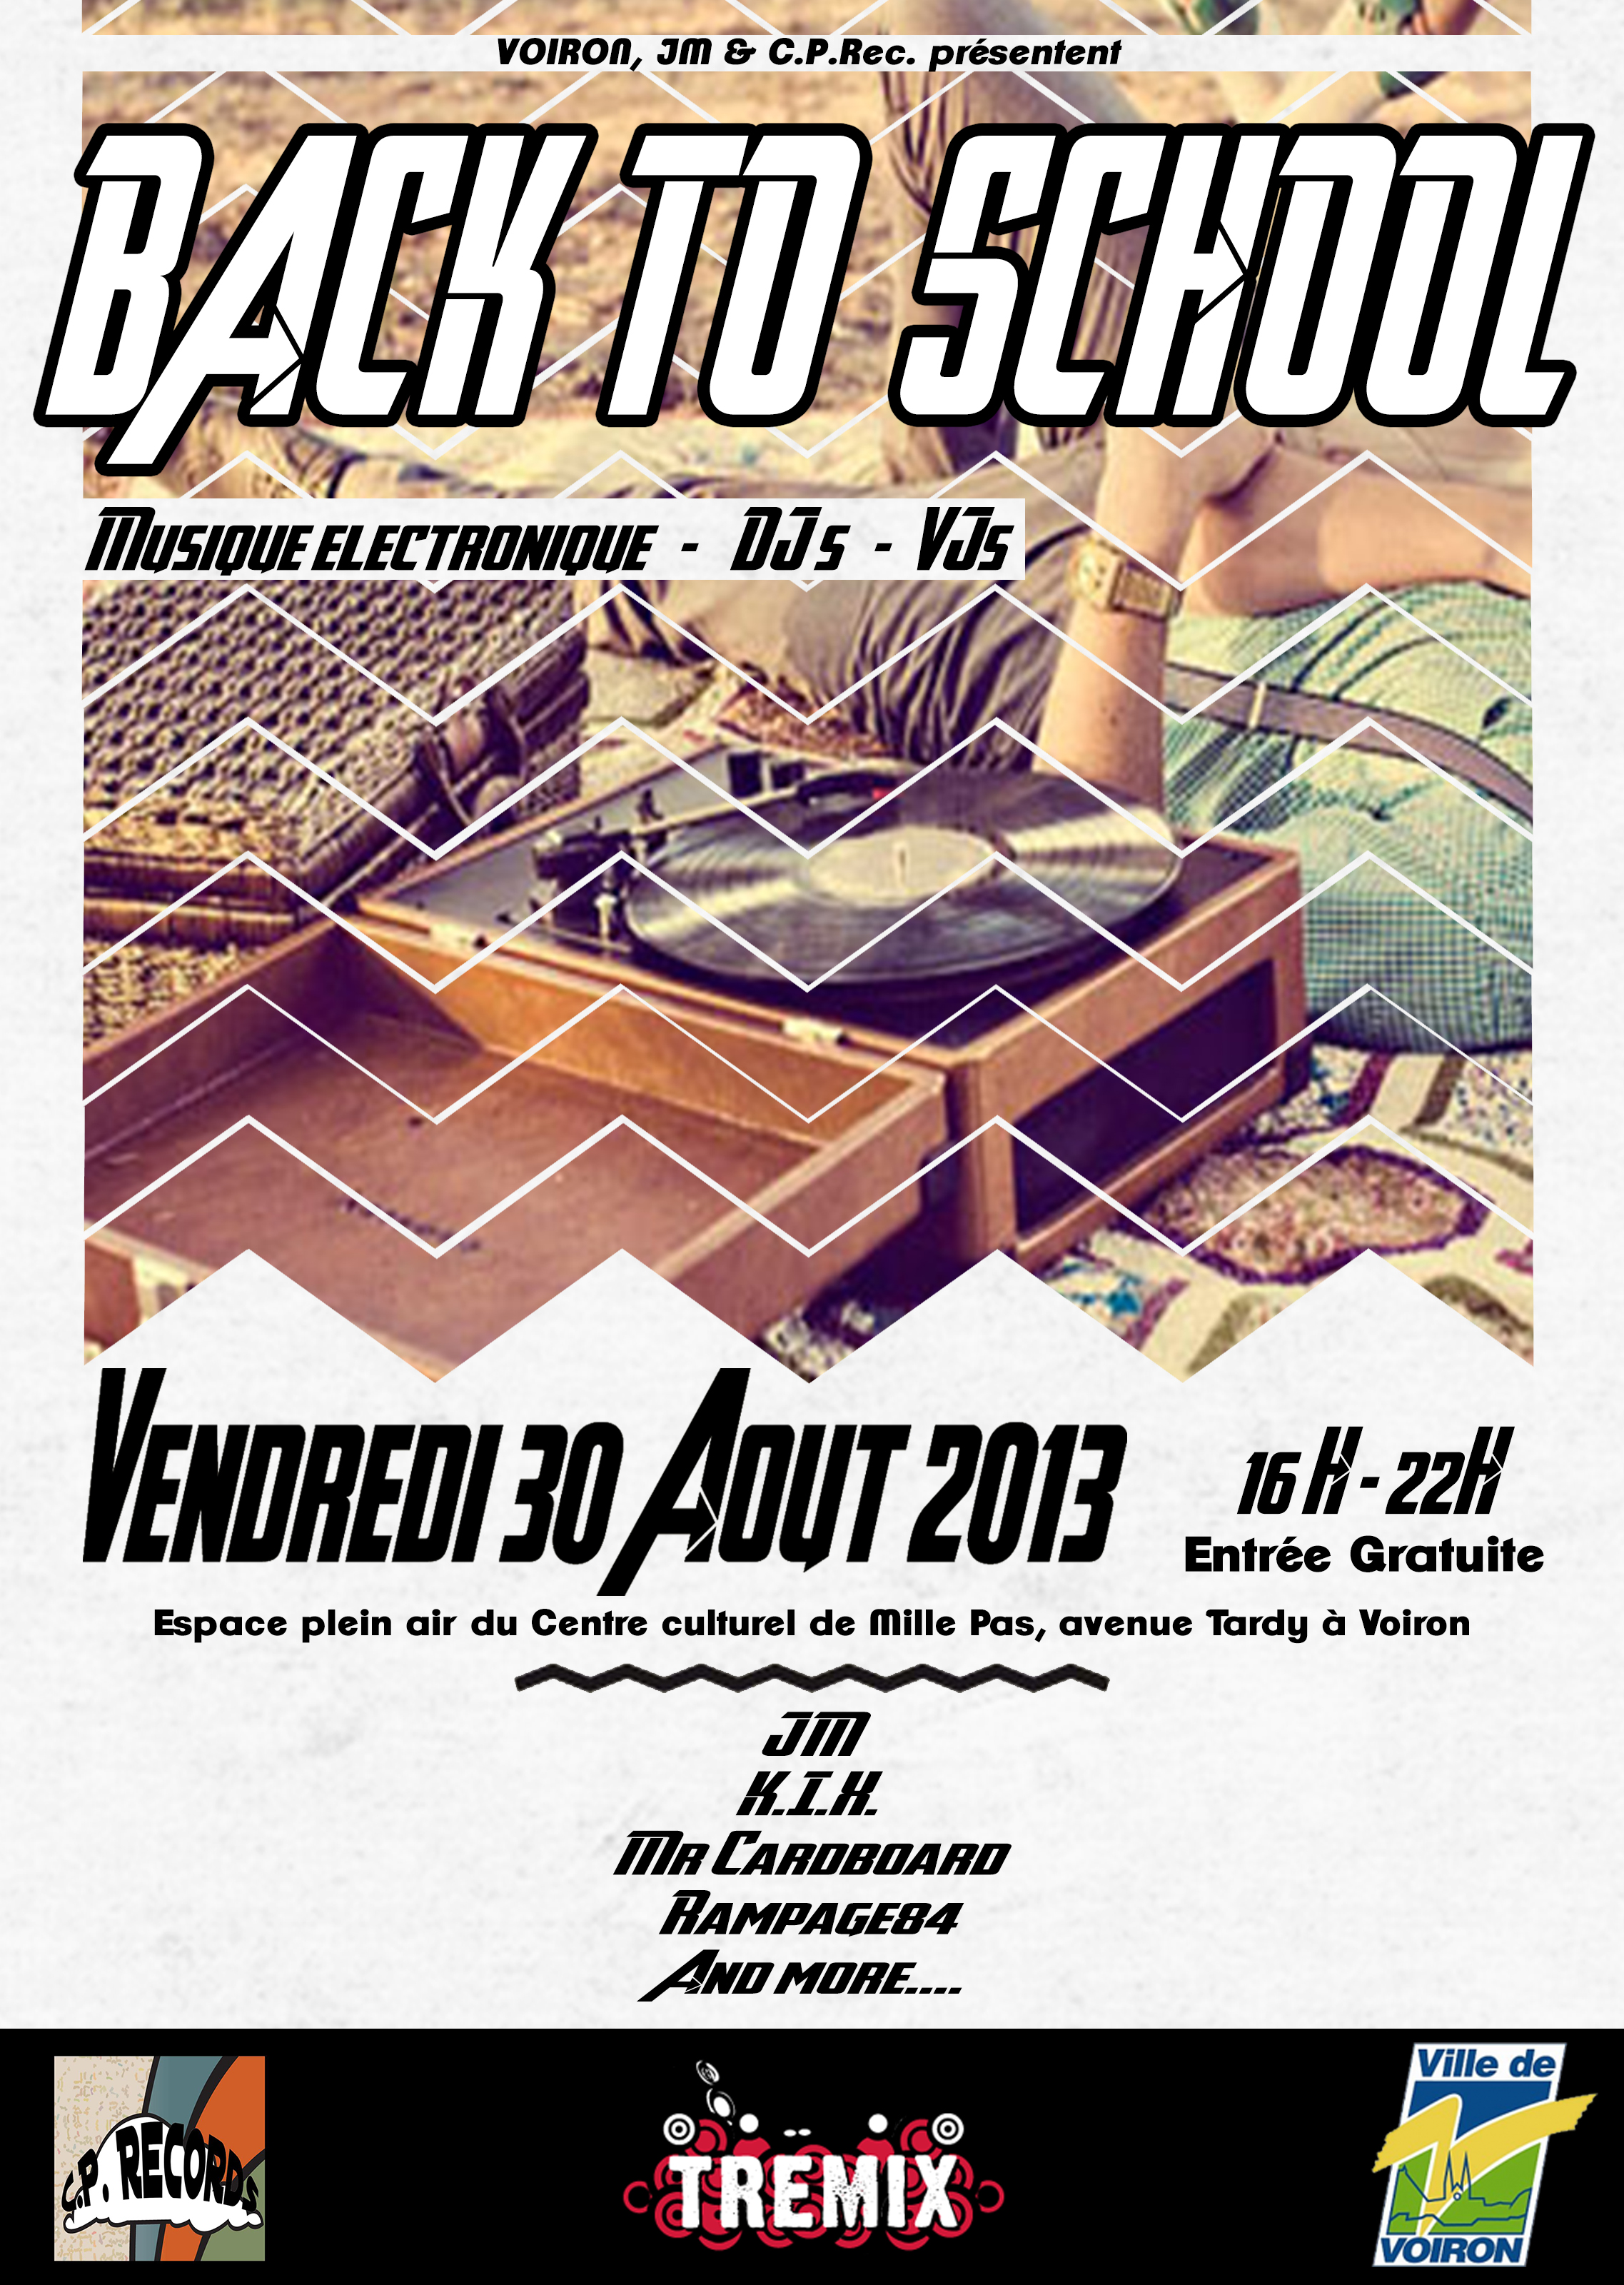 Back to school – Scène Electro